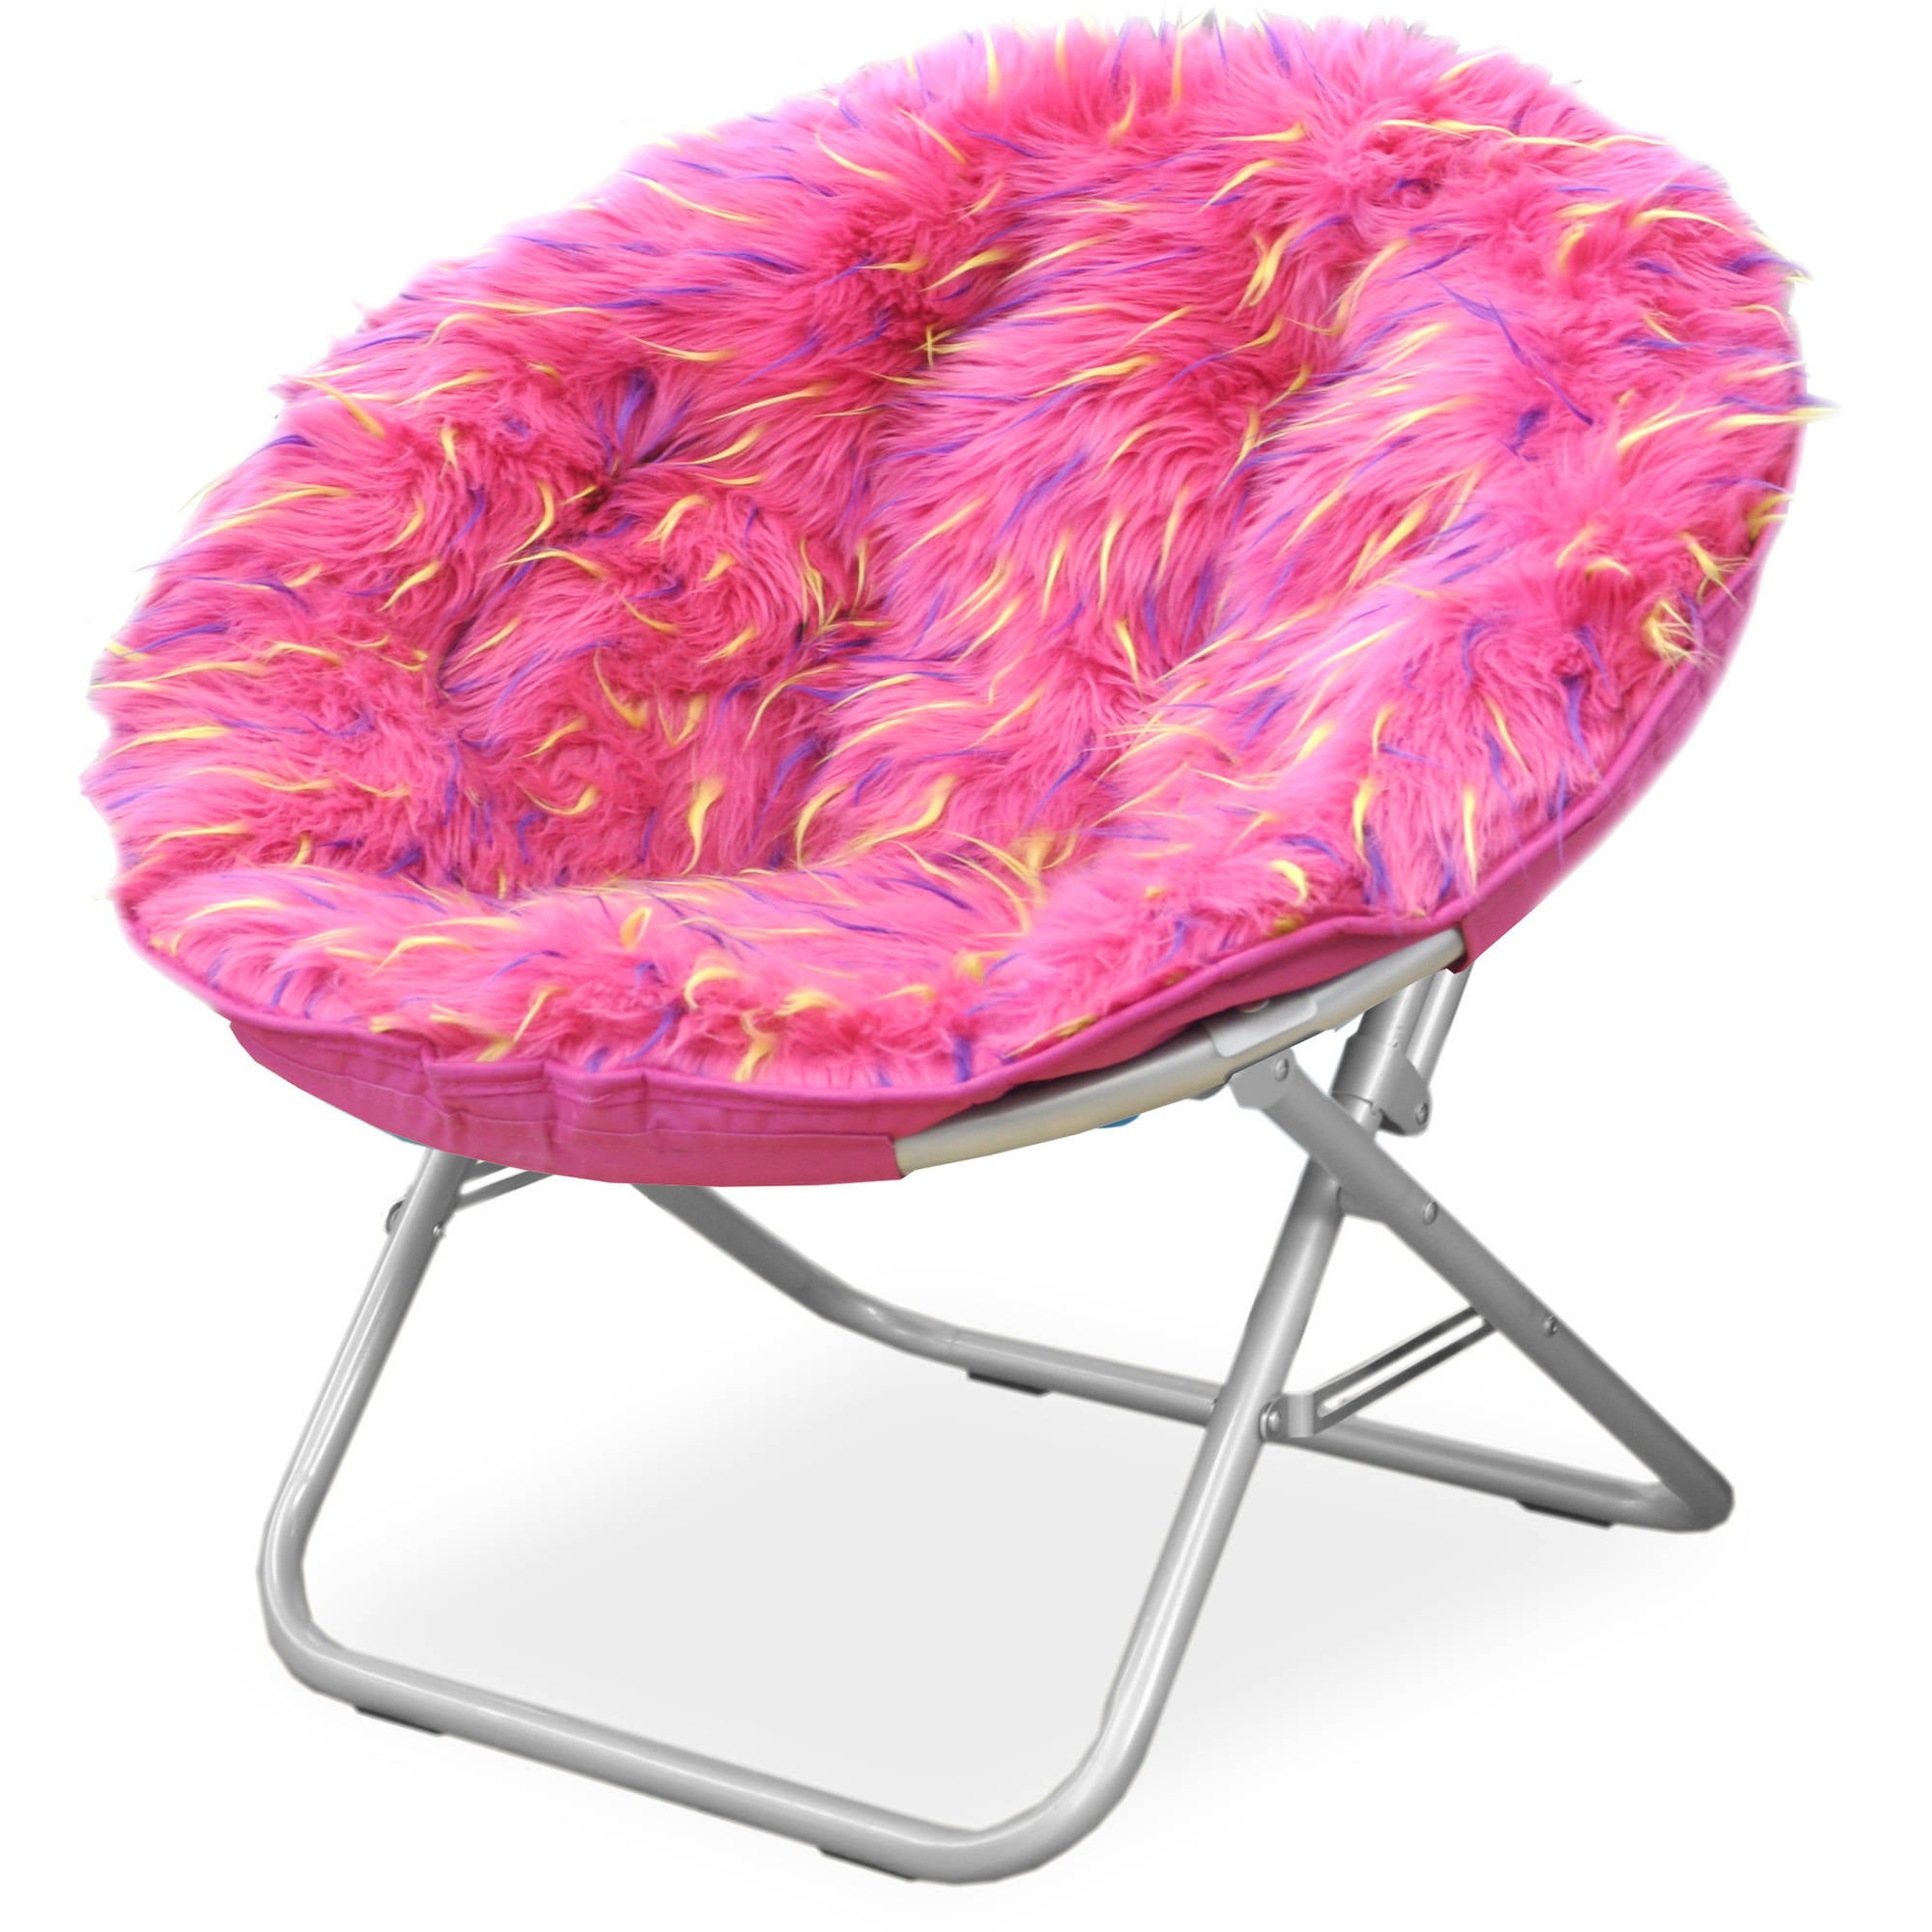 Gentil Your Zone Spiker Faux Fur Saucer Chair, Multiple Colors   Walmart.com